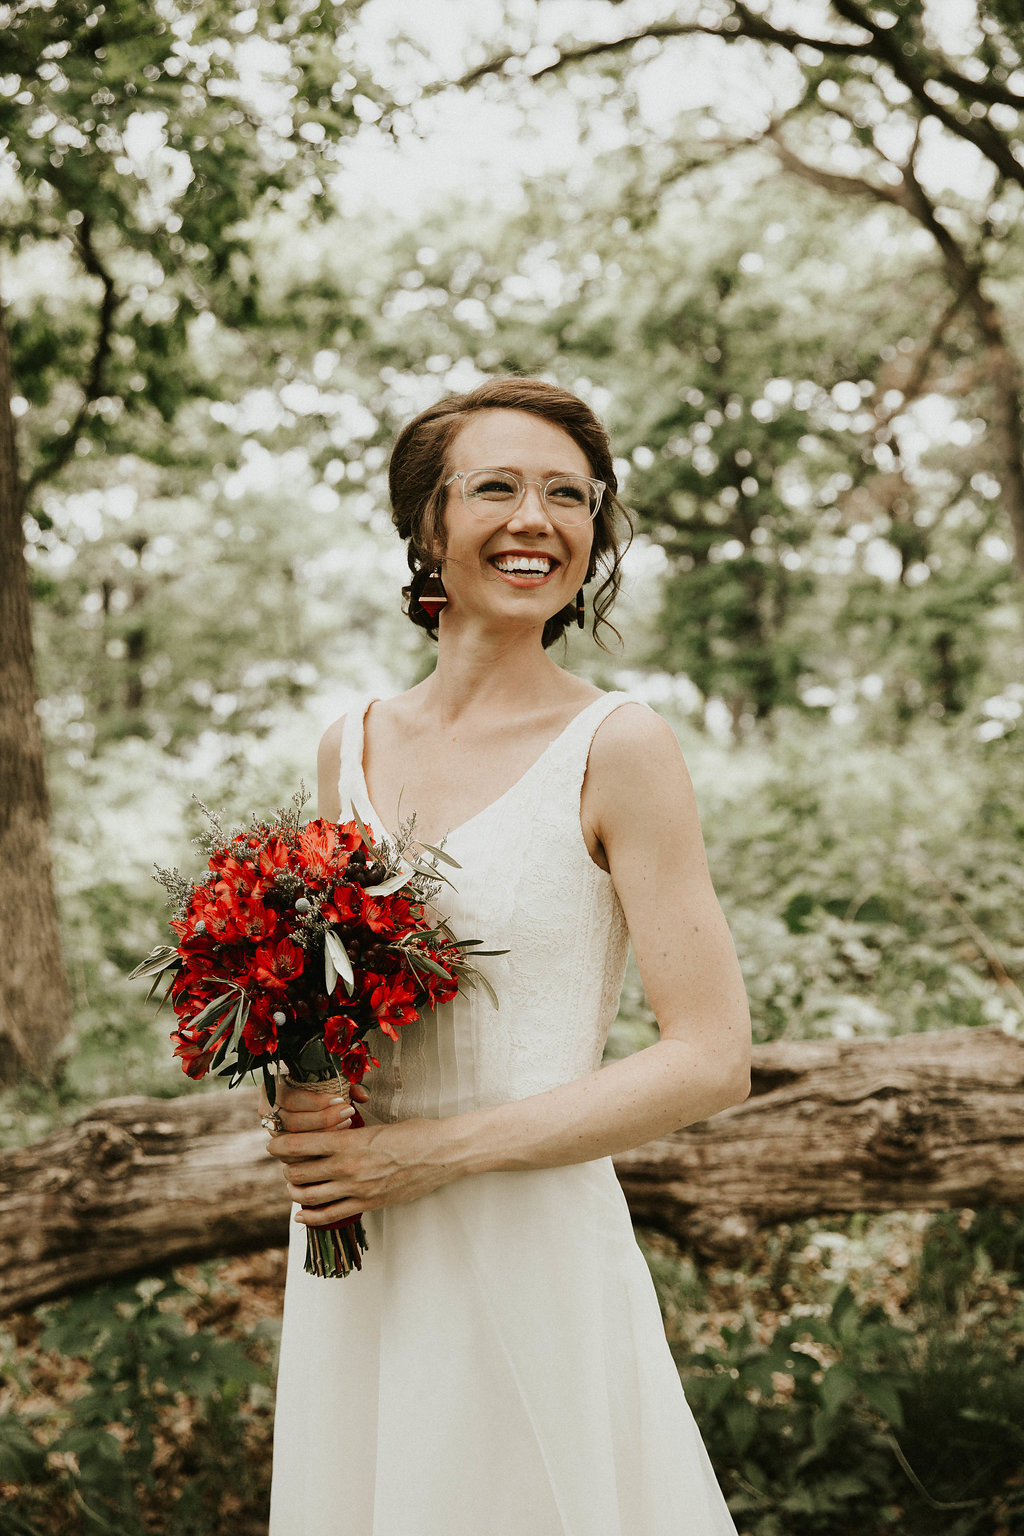 Mike + Cat :: Grace Byron Photography :: Sixpence Events, bride with clear glasses and simple wedding dress sheath